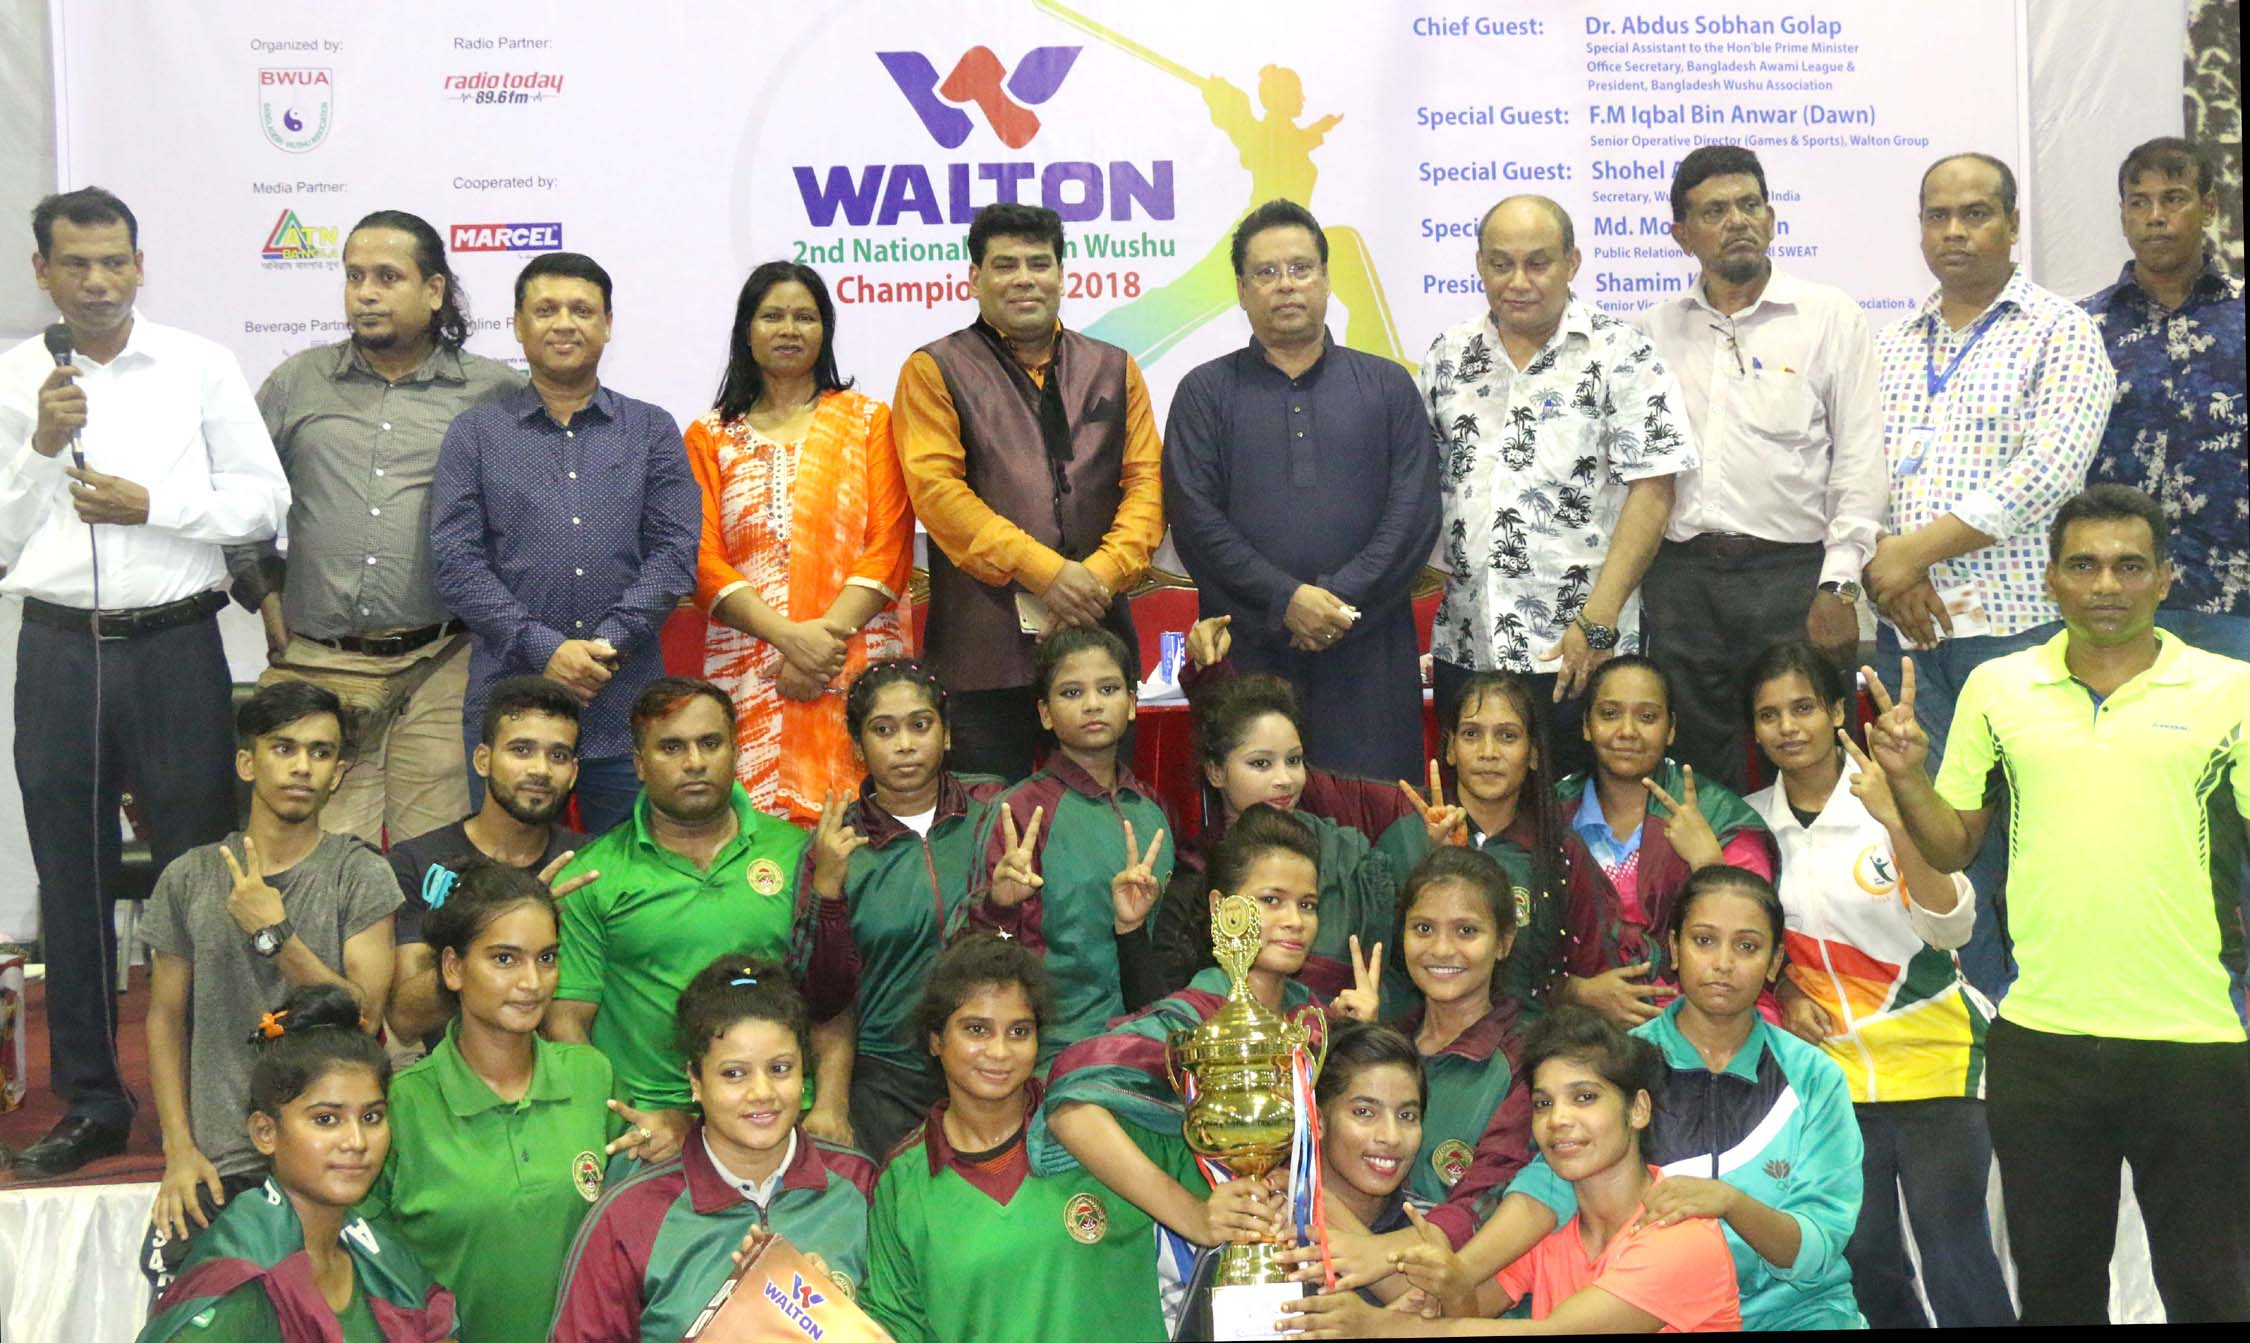 Bangladesh Ansar, the champions of the Walton 2nd National Women's Wushu Championship with the guests and officials of Bangladesh Wushu Association pose for a photo session at the Gymnasium of National Sports Council on Thursday.